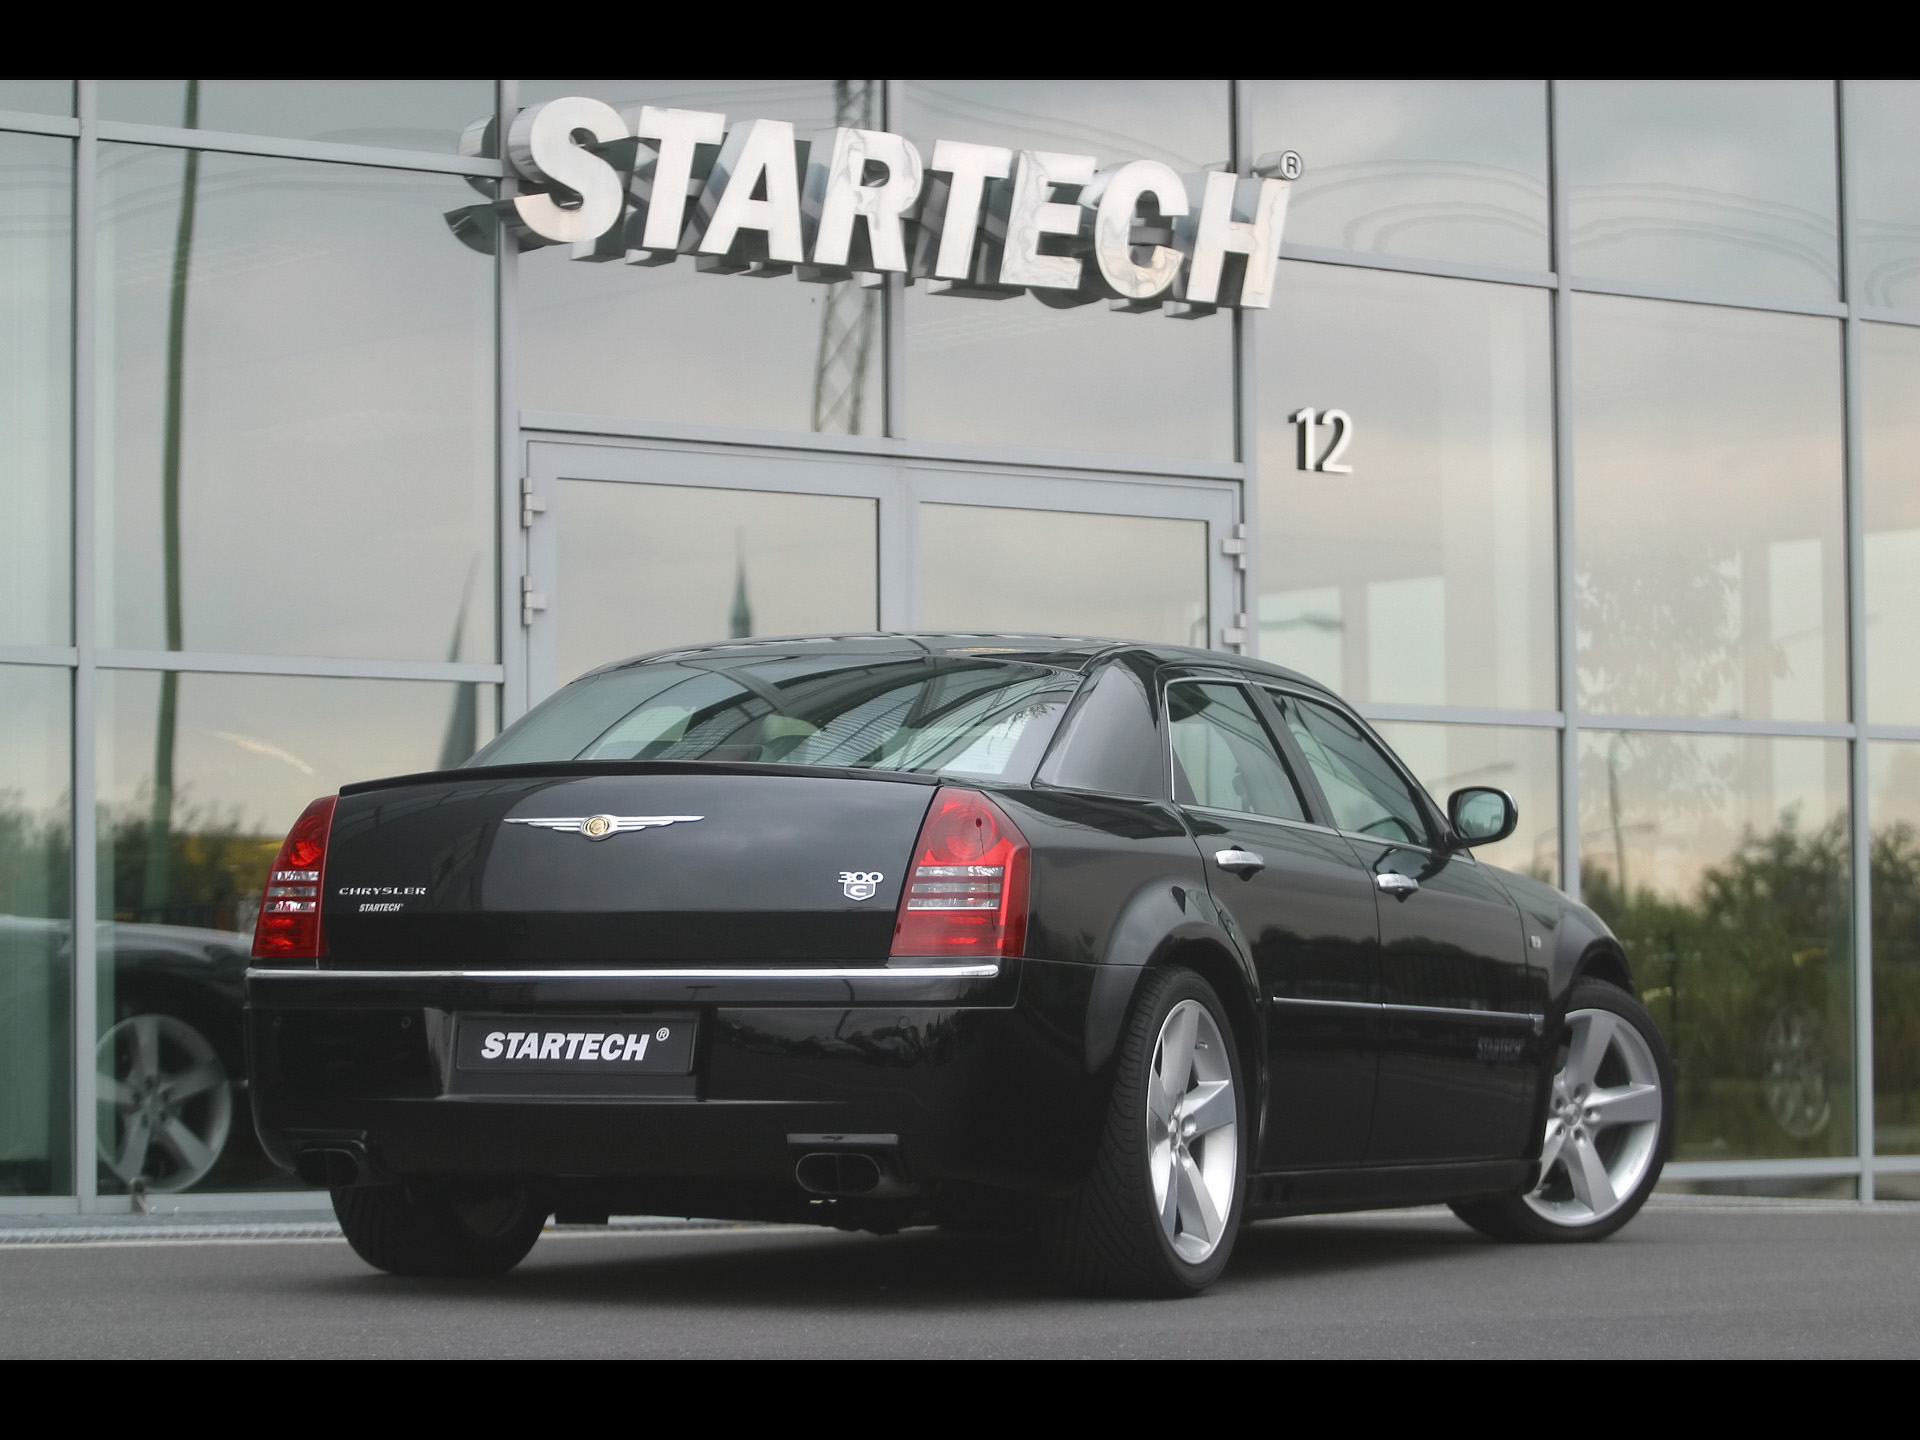 Startech Chrysler 300C photo 33026